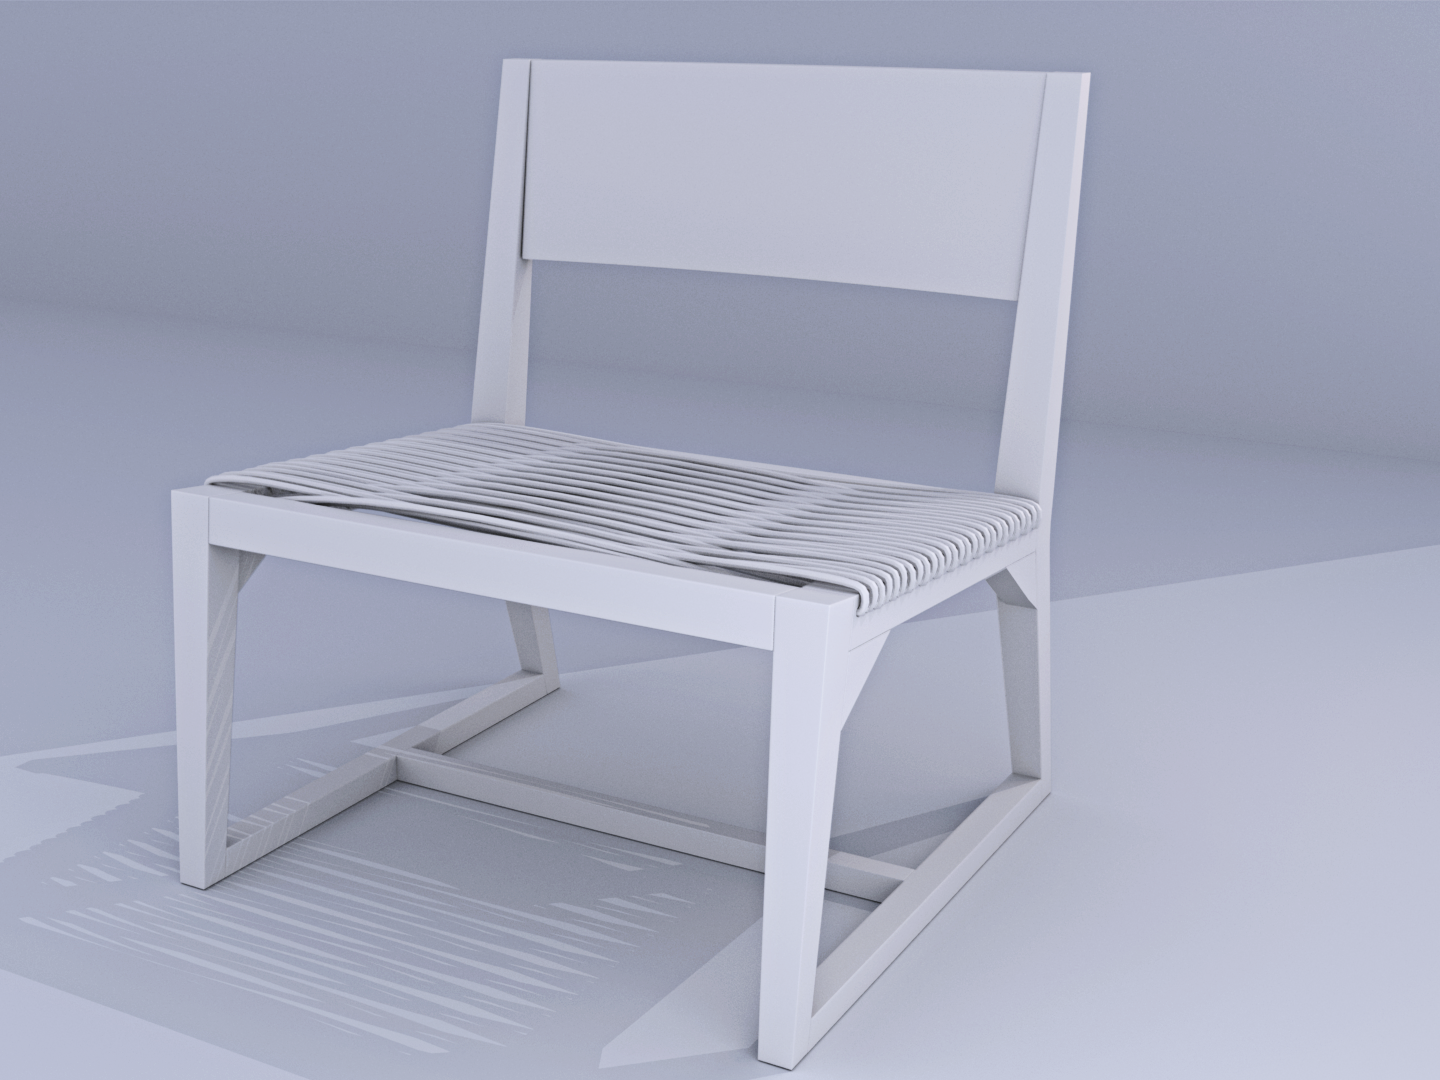 Chair 3D Render chairmodeling render productmodeling